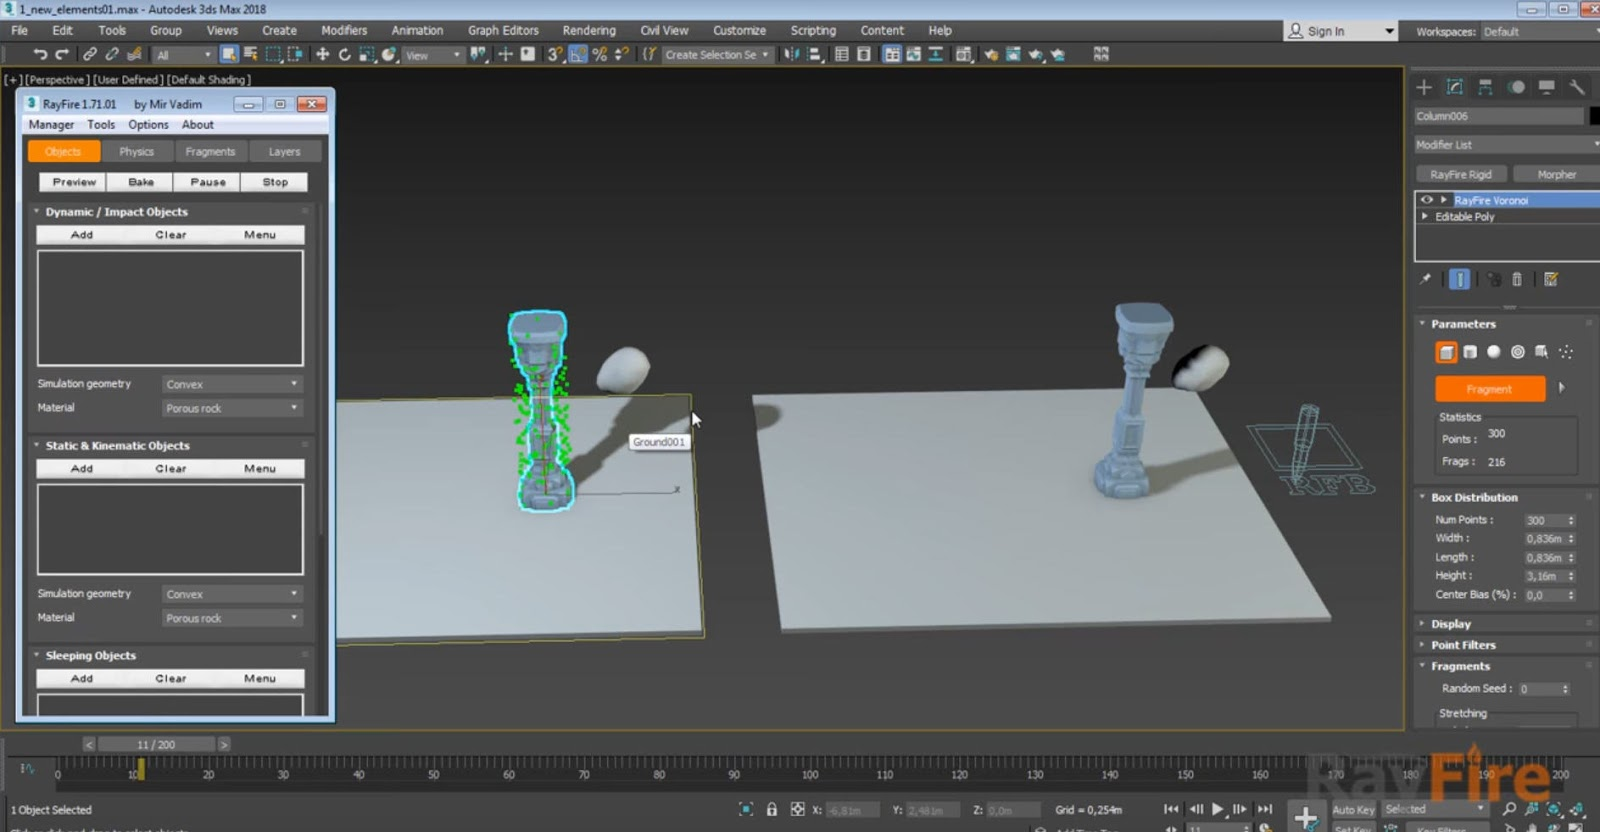 RayFire Old (1 71) vs New (1 81) dynamic simulation workflow | CG